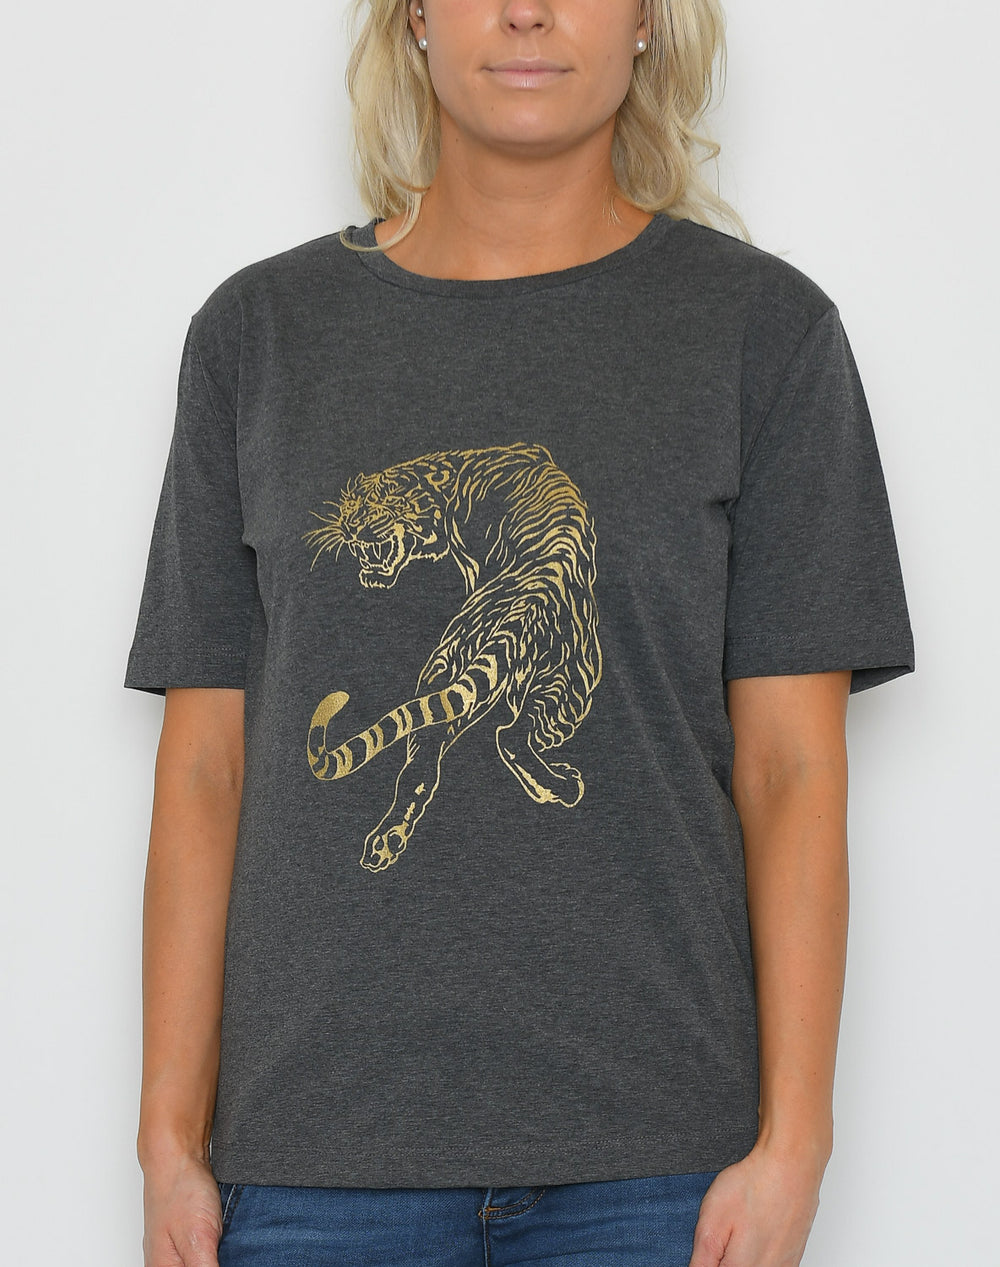 Luxzuz t-shirt sneaky tiger dark grey melange